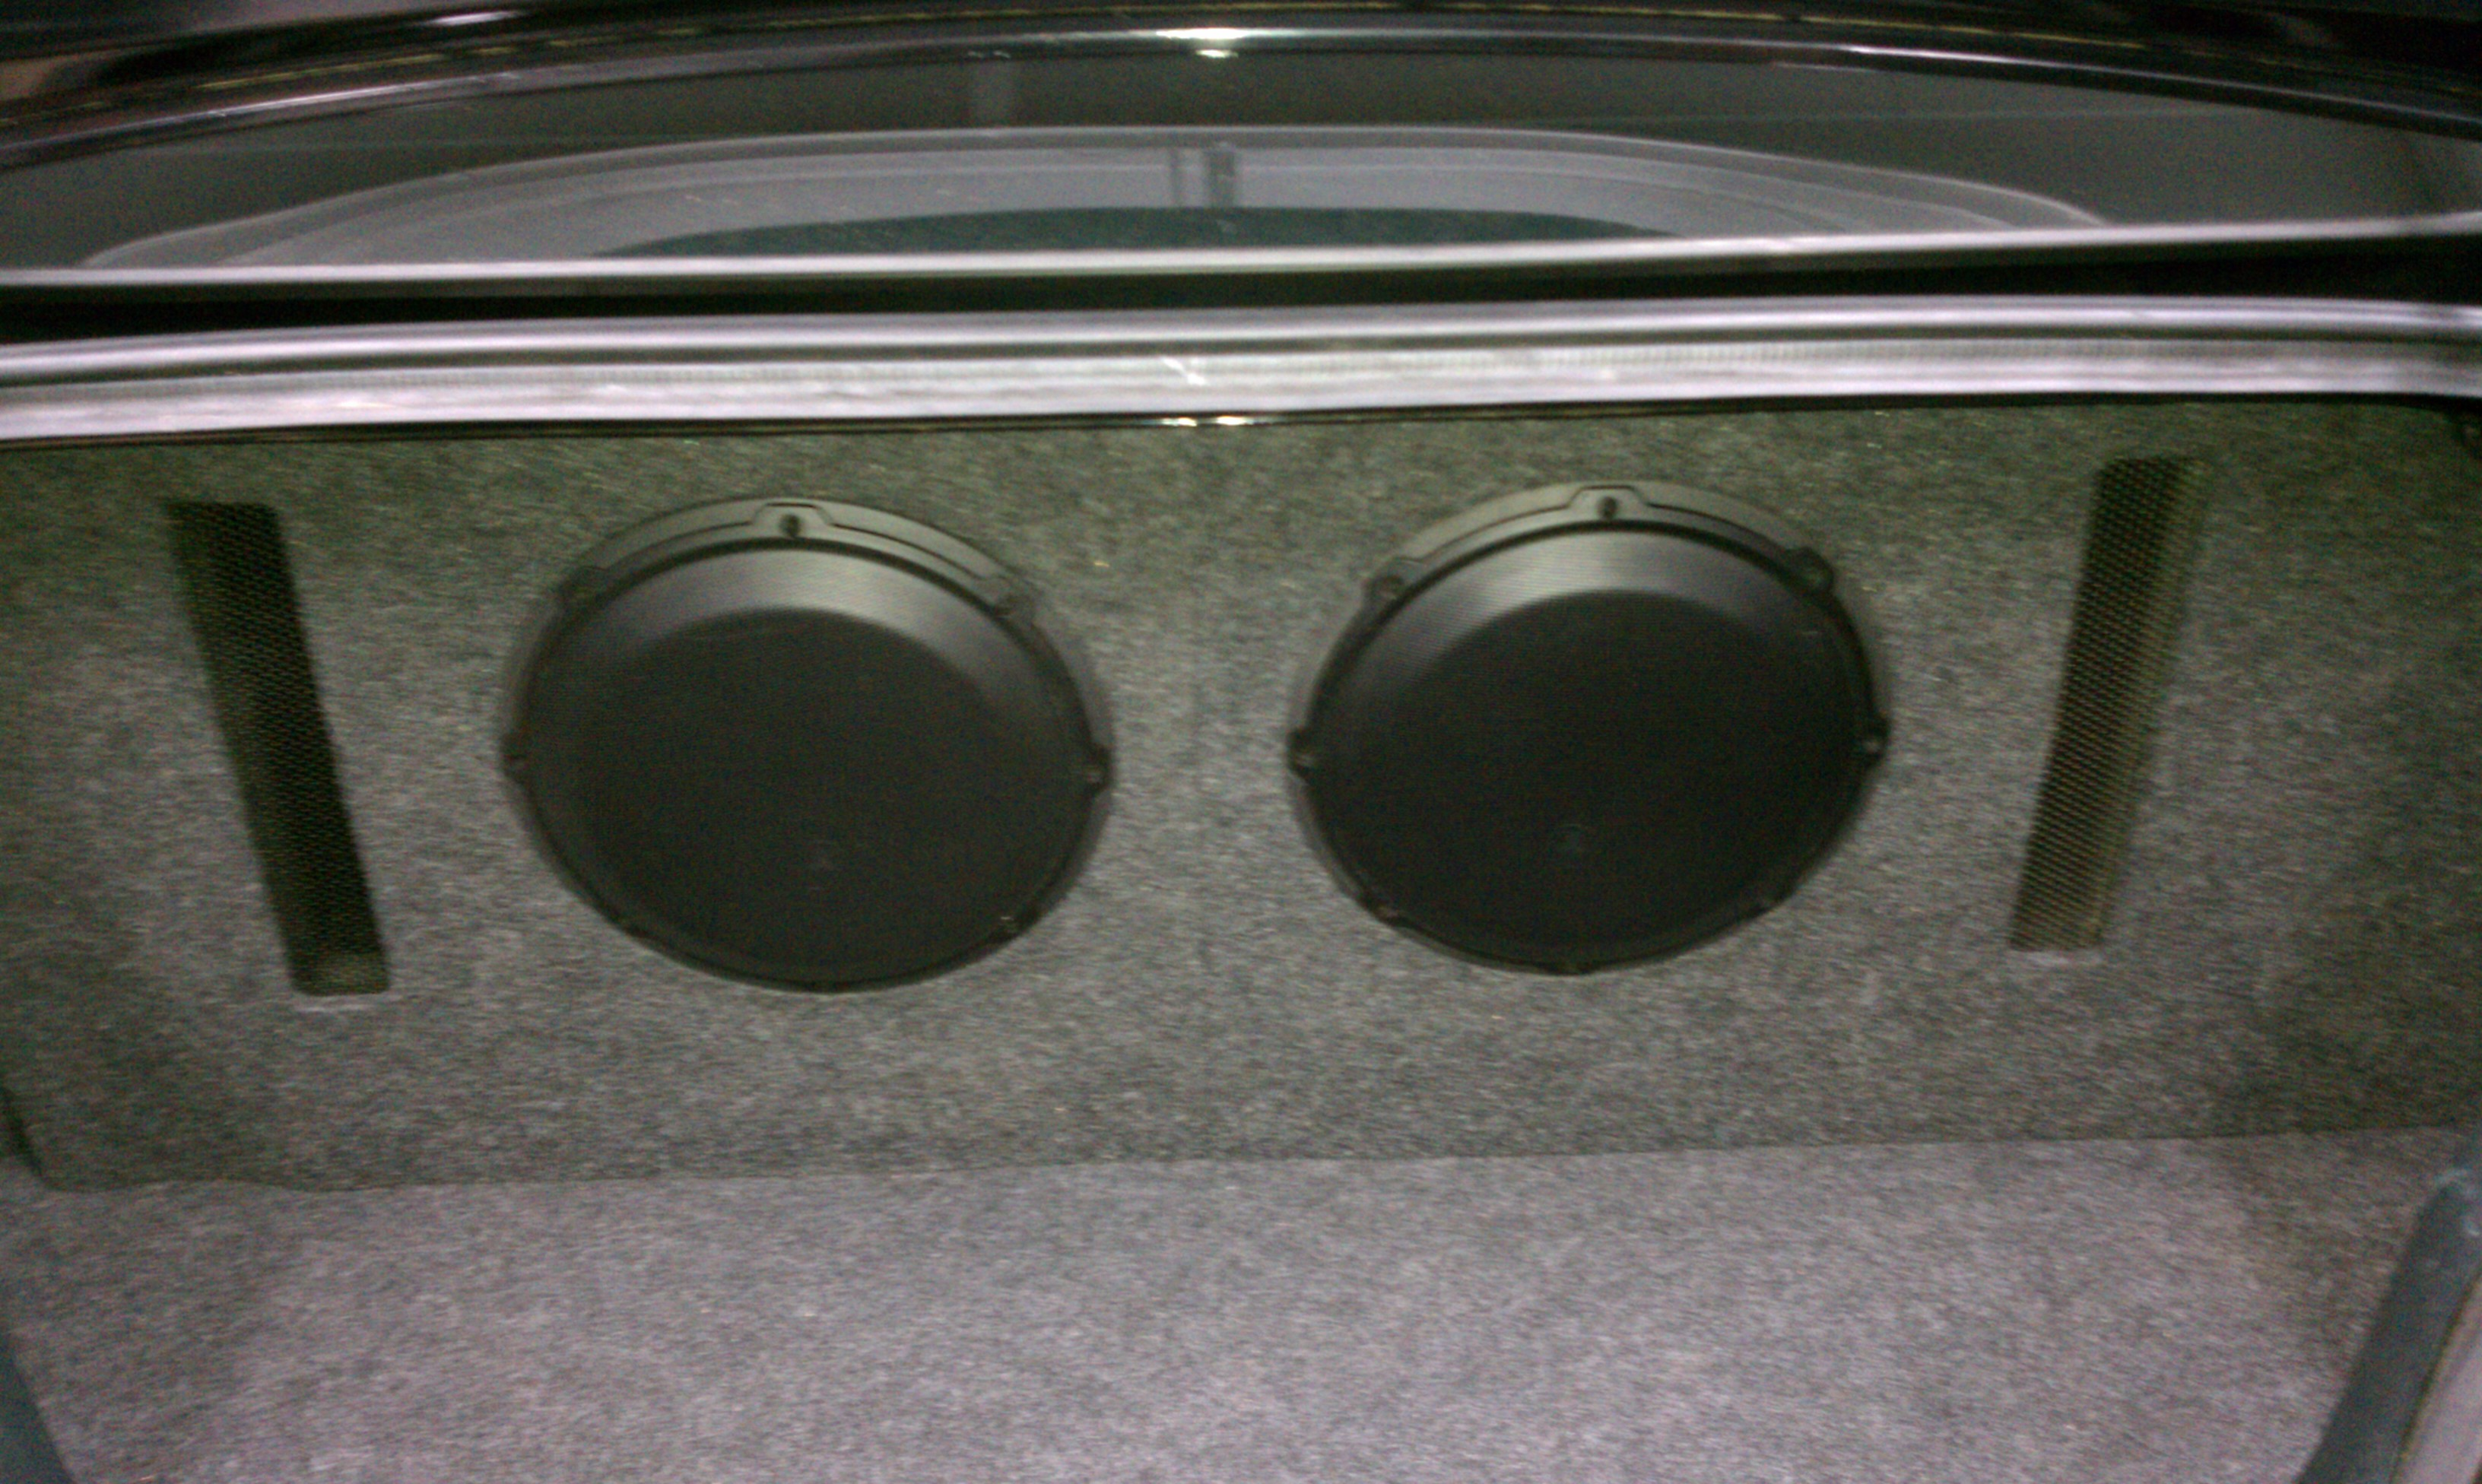 2012 mustang 2 10 jl audio w3 subwoofers installed in a custom 2012 ford mustang 2 10 jl audio w3 subwoofers installed in a custom publicscrutiny Choice Image